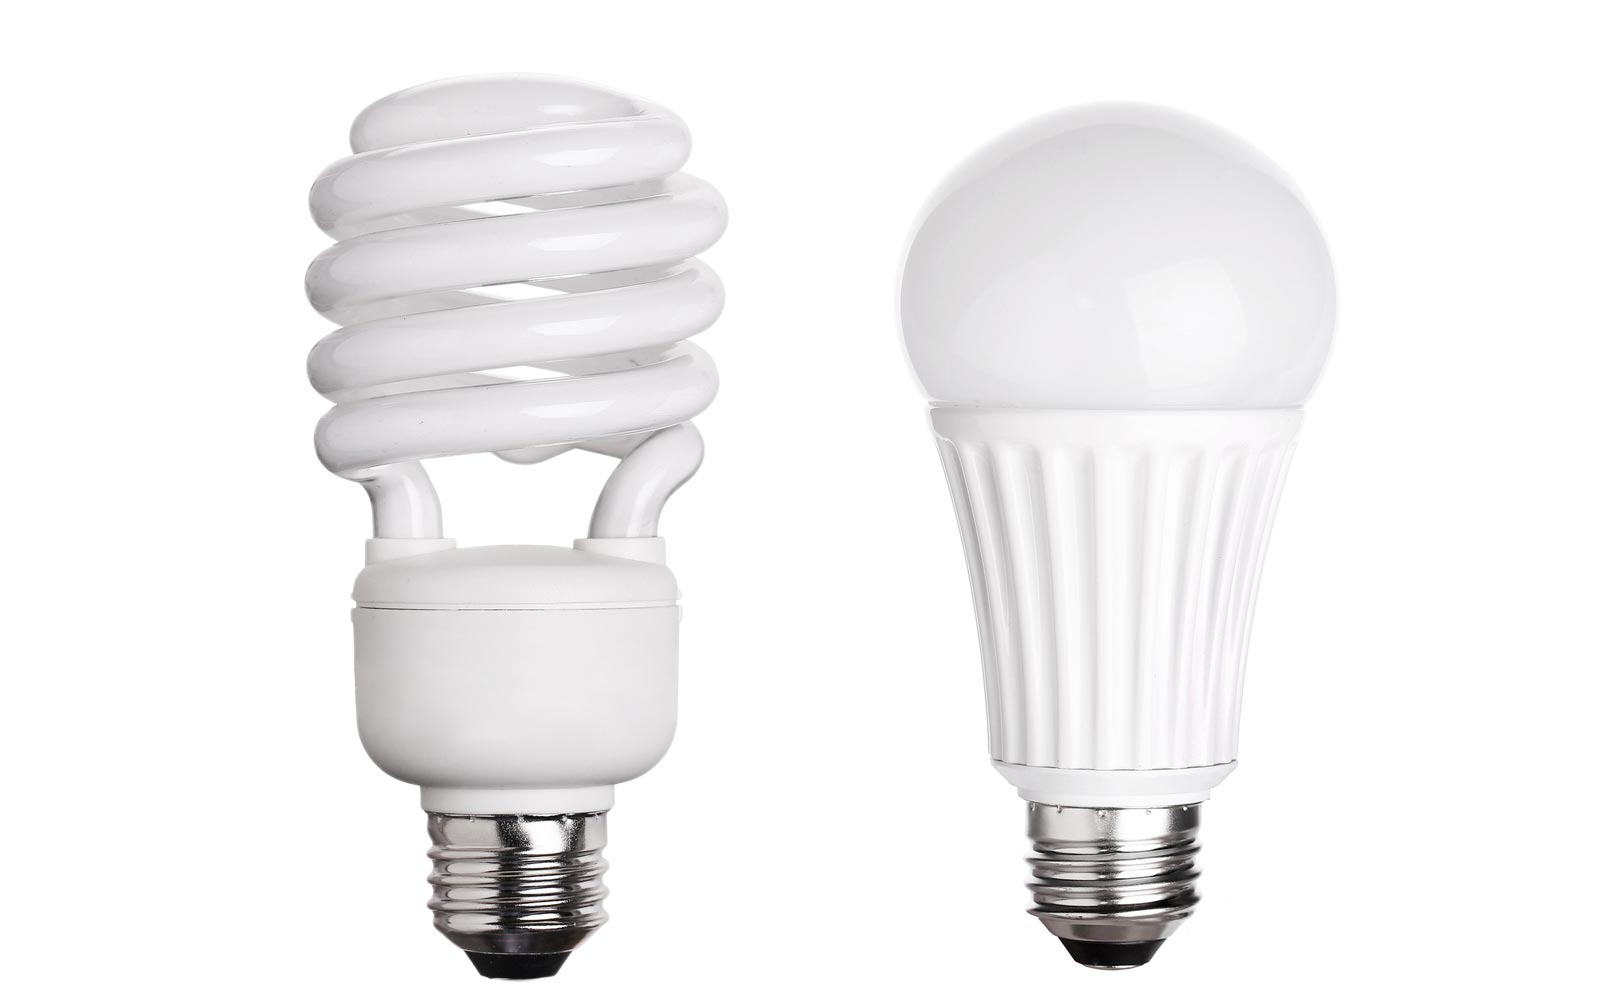 cfl vs led light bulbs